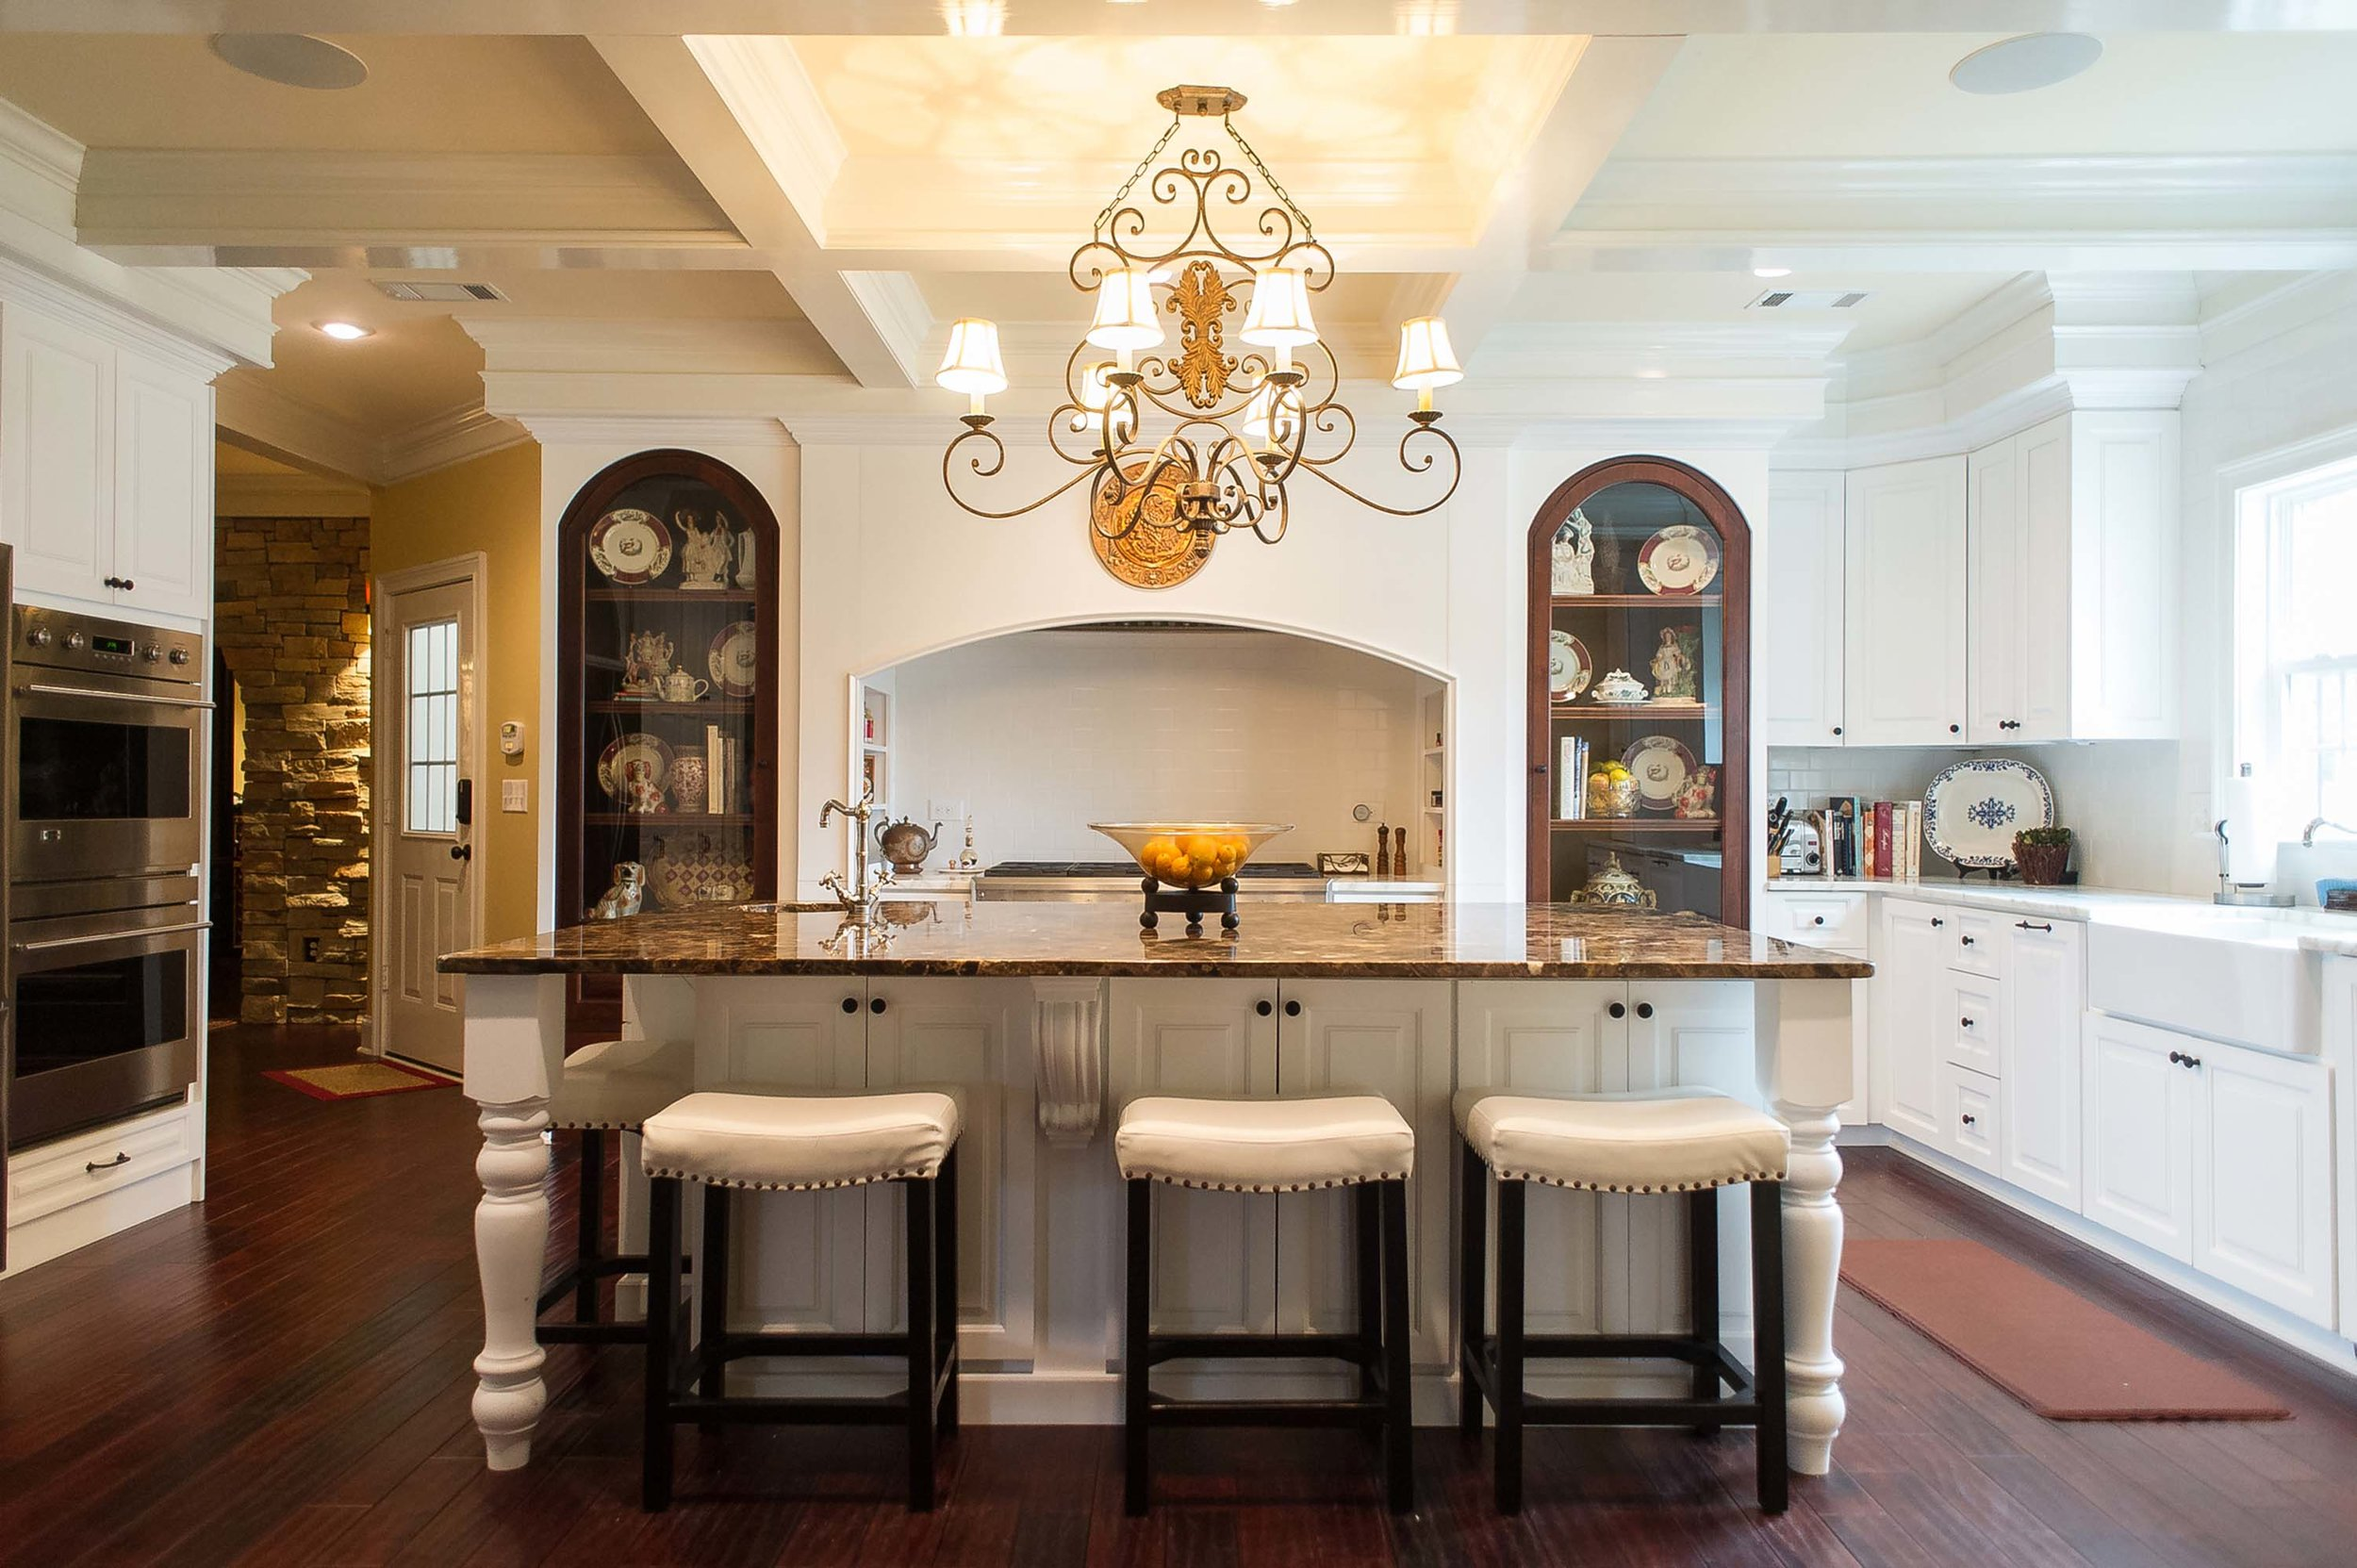 Large Kitchen Area with Barstools and Chandelier